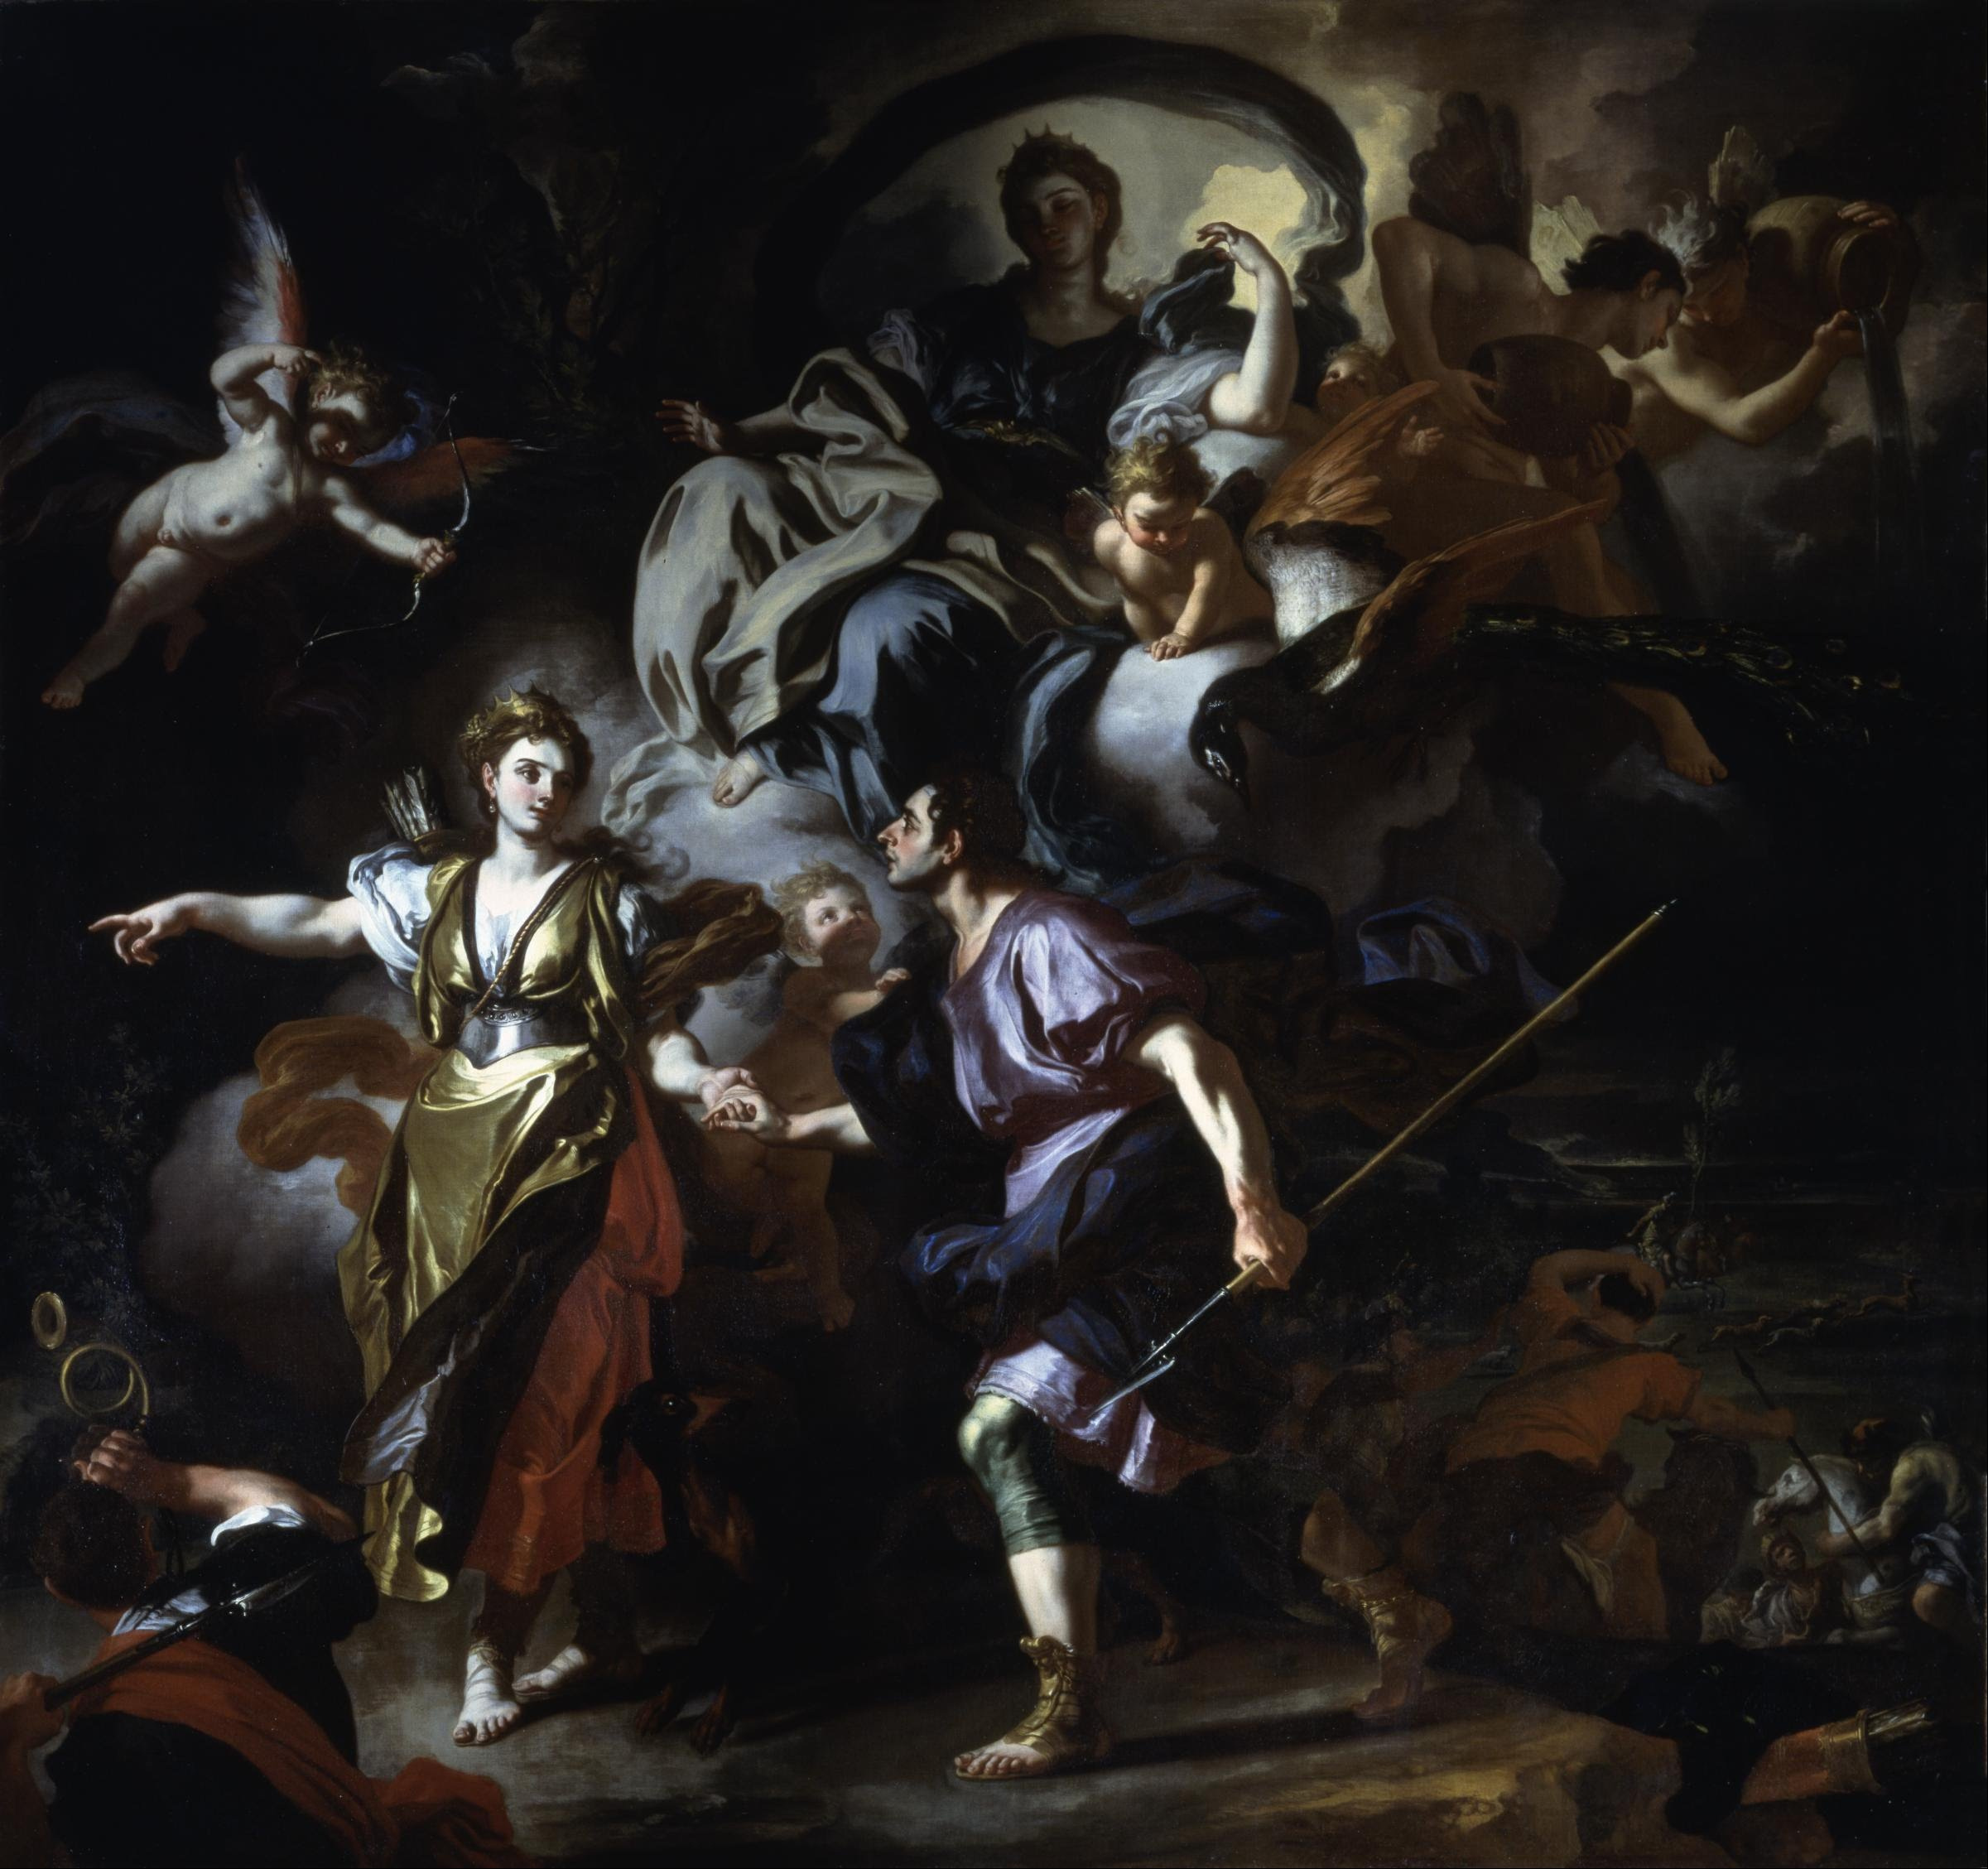 filefrancesco solimena the royal hunt of dido and